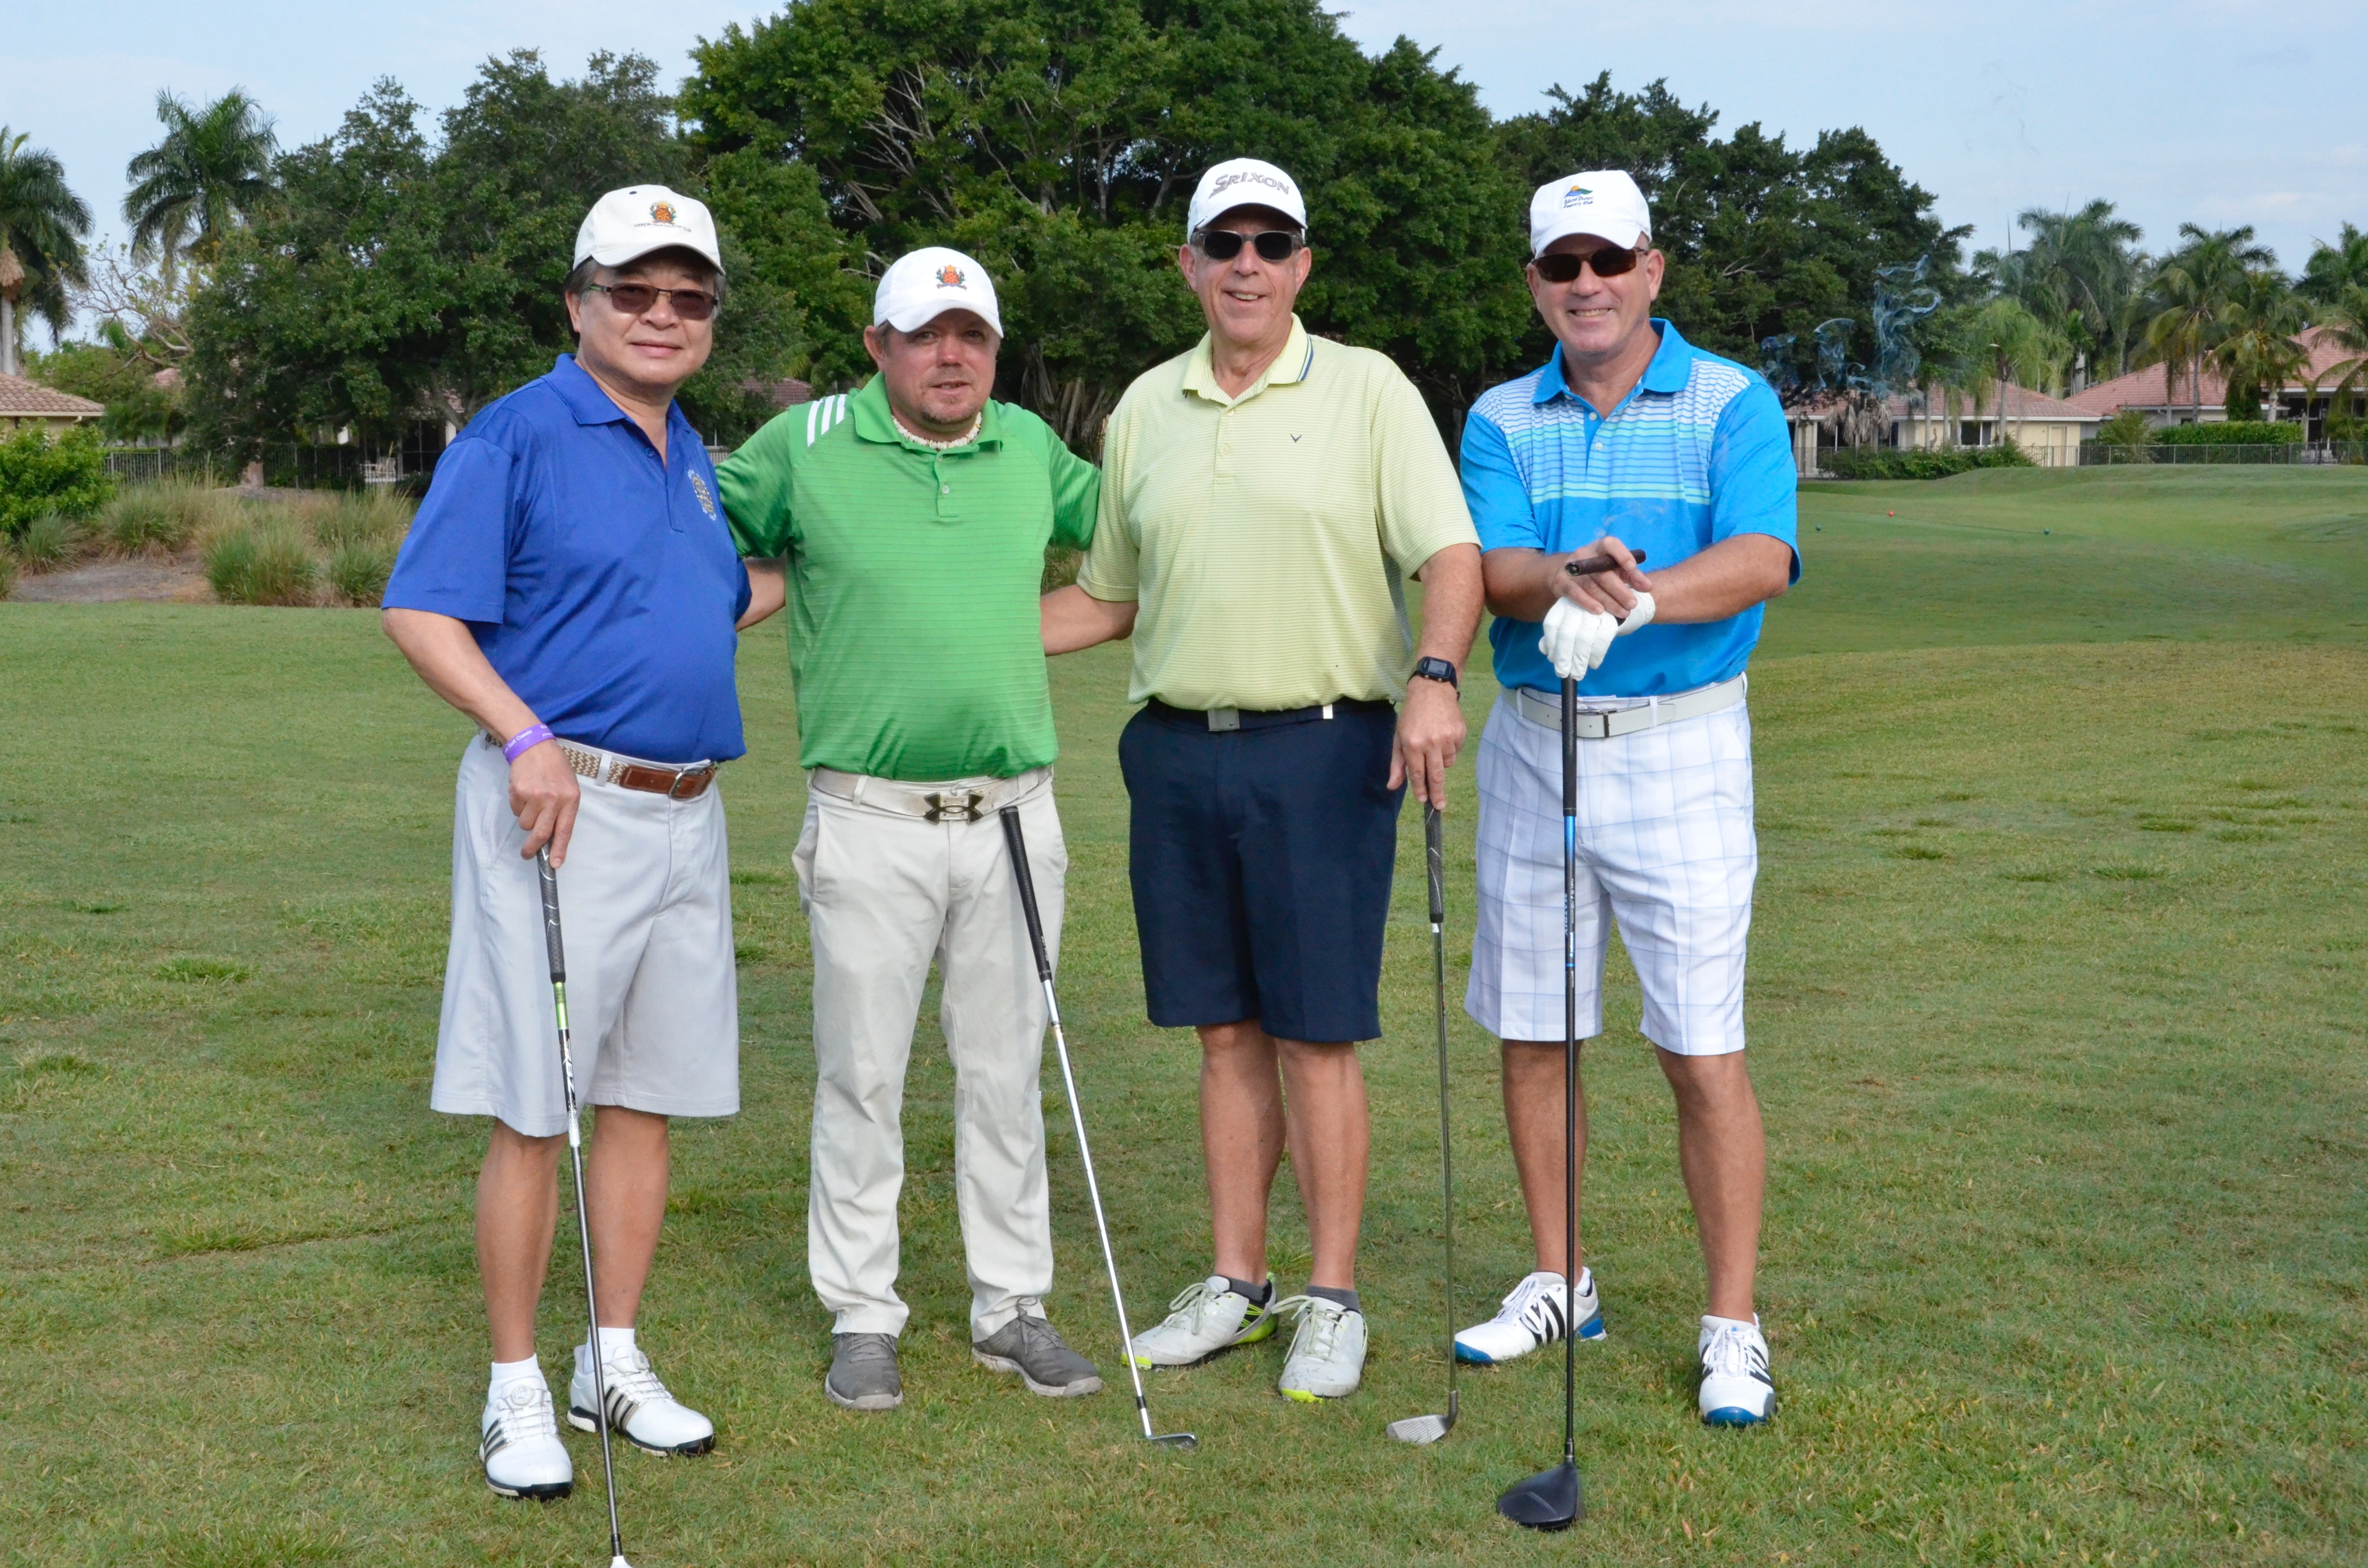 33rd Annual Rotary Golf Classic Sponsored by FHVLEGAL.COM gallery image #90